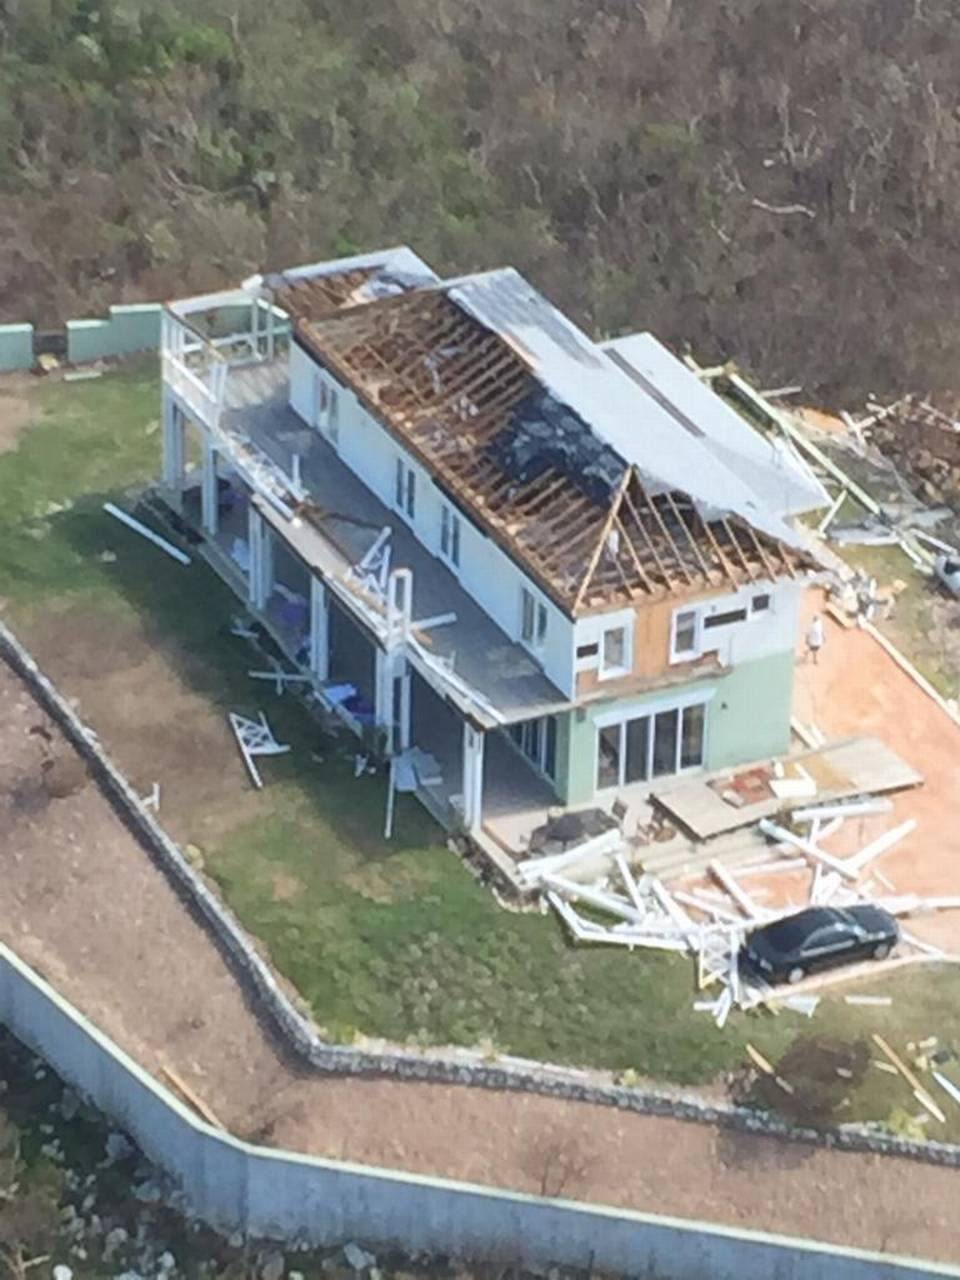 A home in the central portion of Long Island in the Bahamas sustained significant damage from Hurricane Joaquin, which dumped torrential rain and high winds on the island chain on Saturday. Mike Fernandez